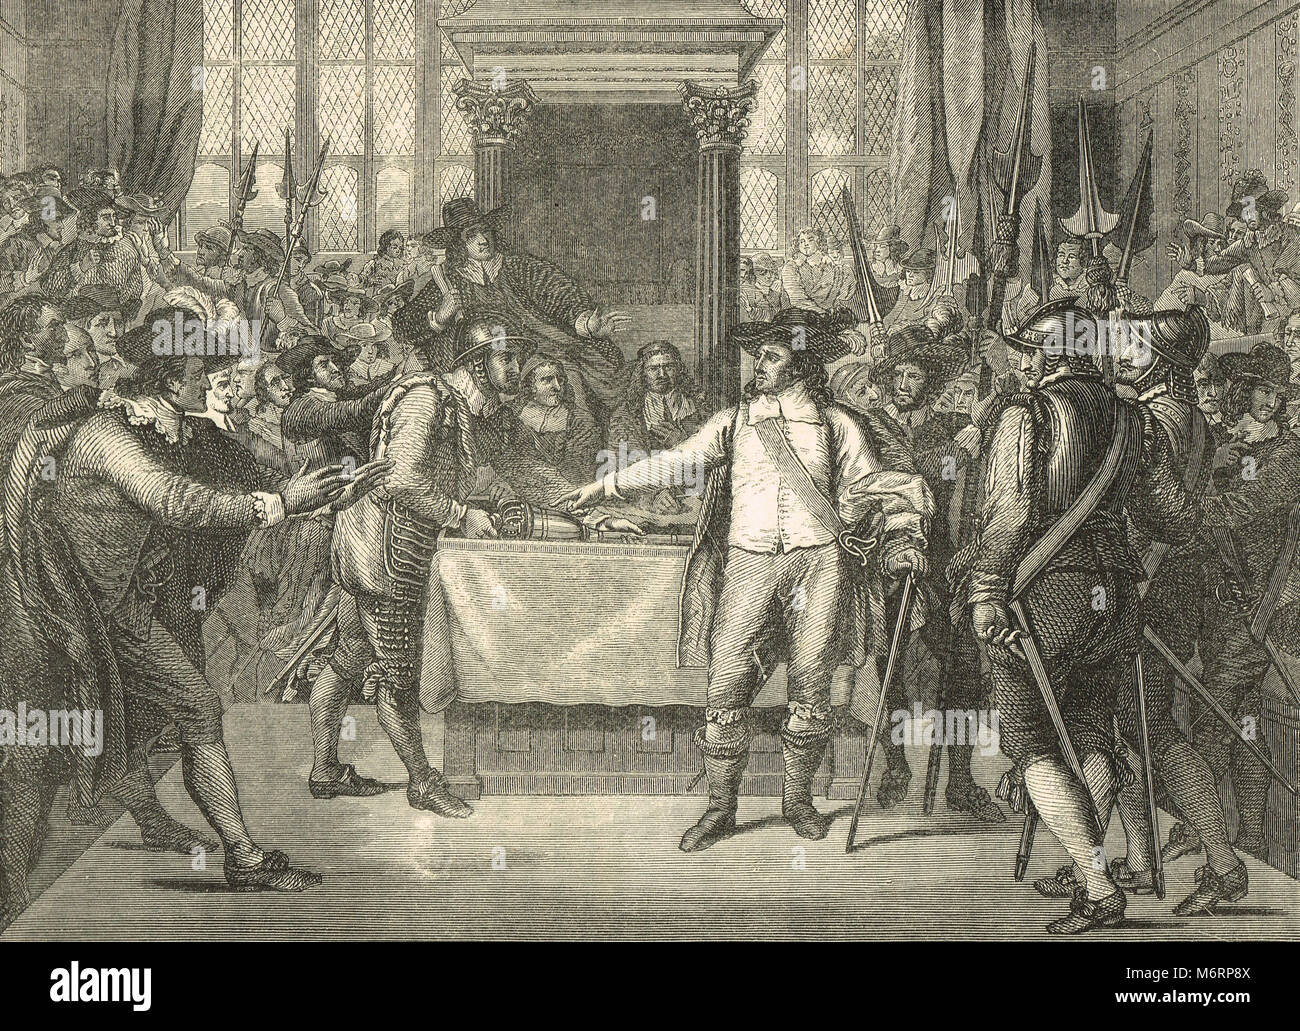 Oliver Cromwell dissolving the rump parliament, 20 April 1653